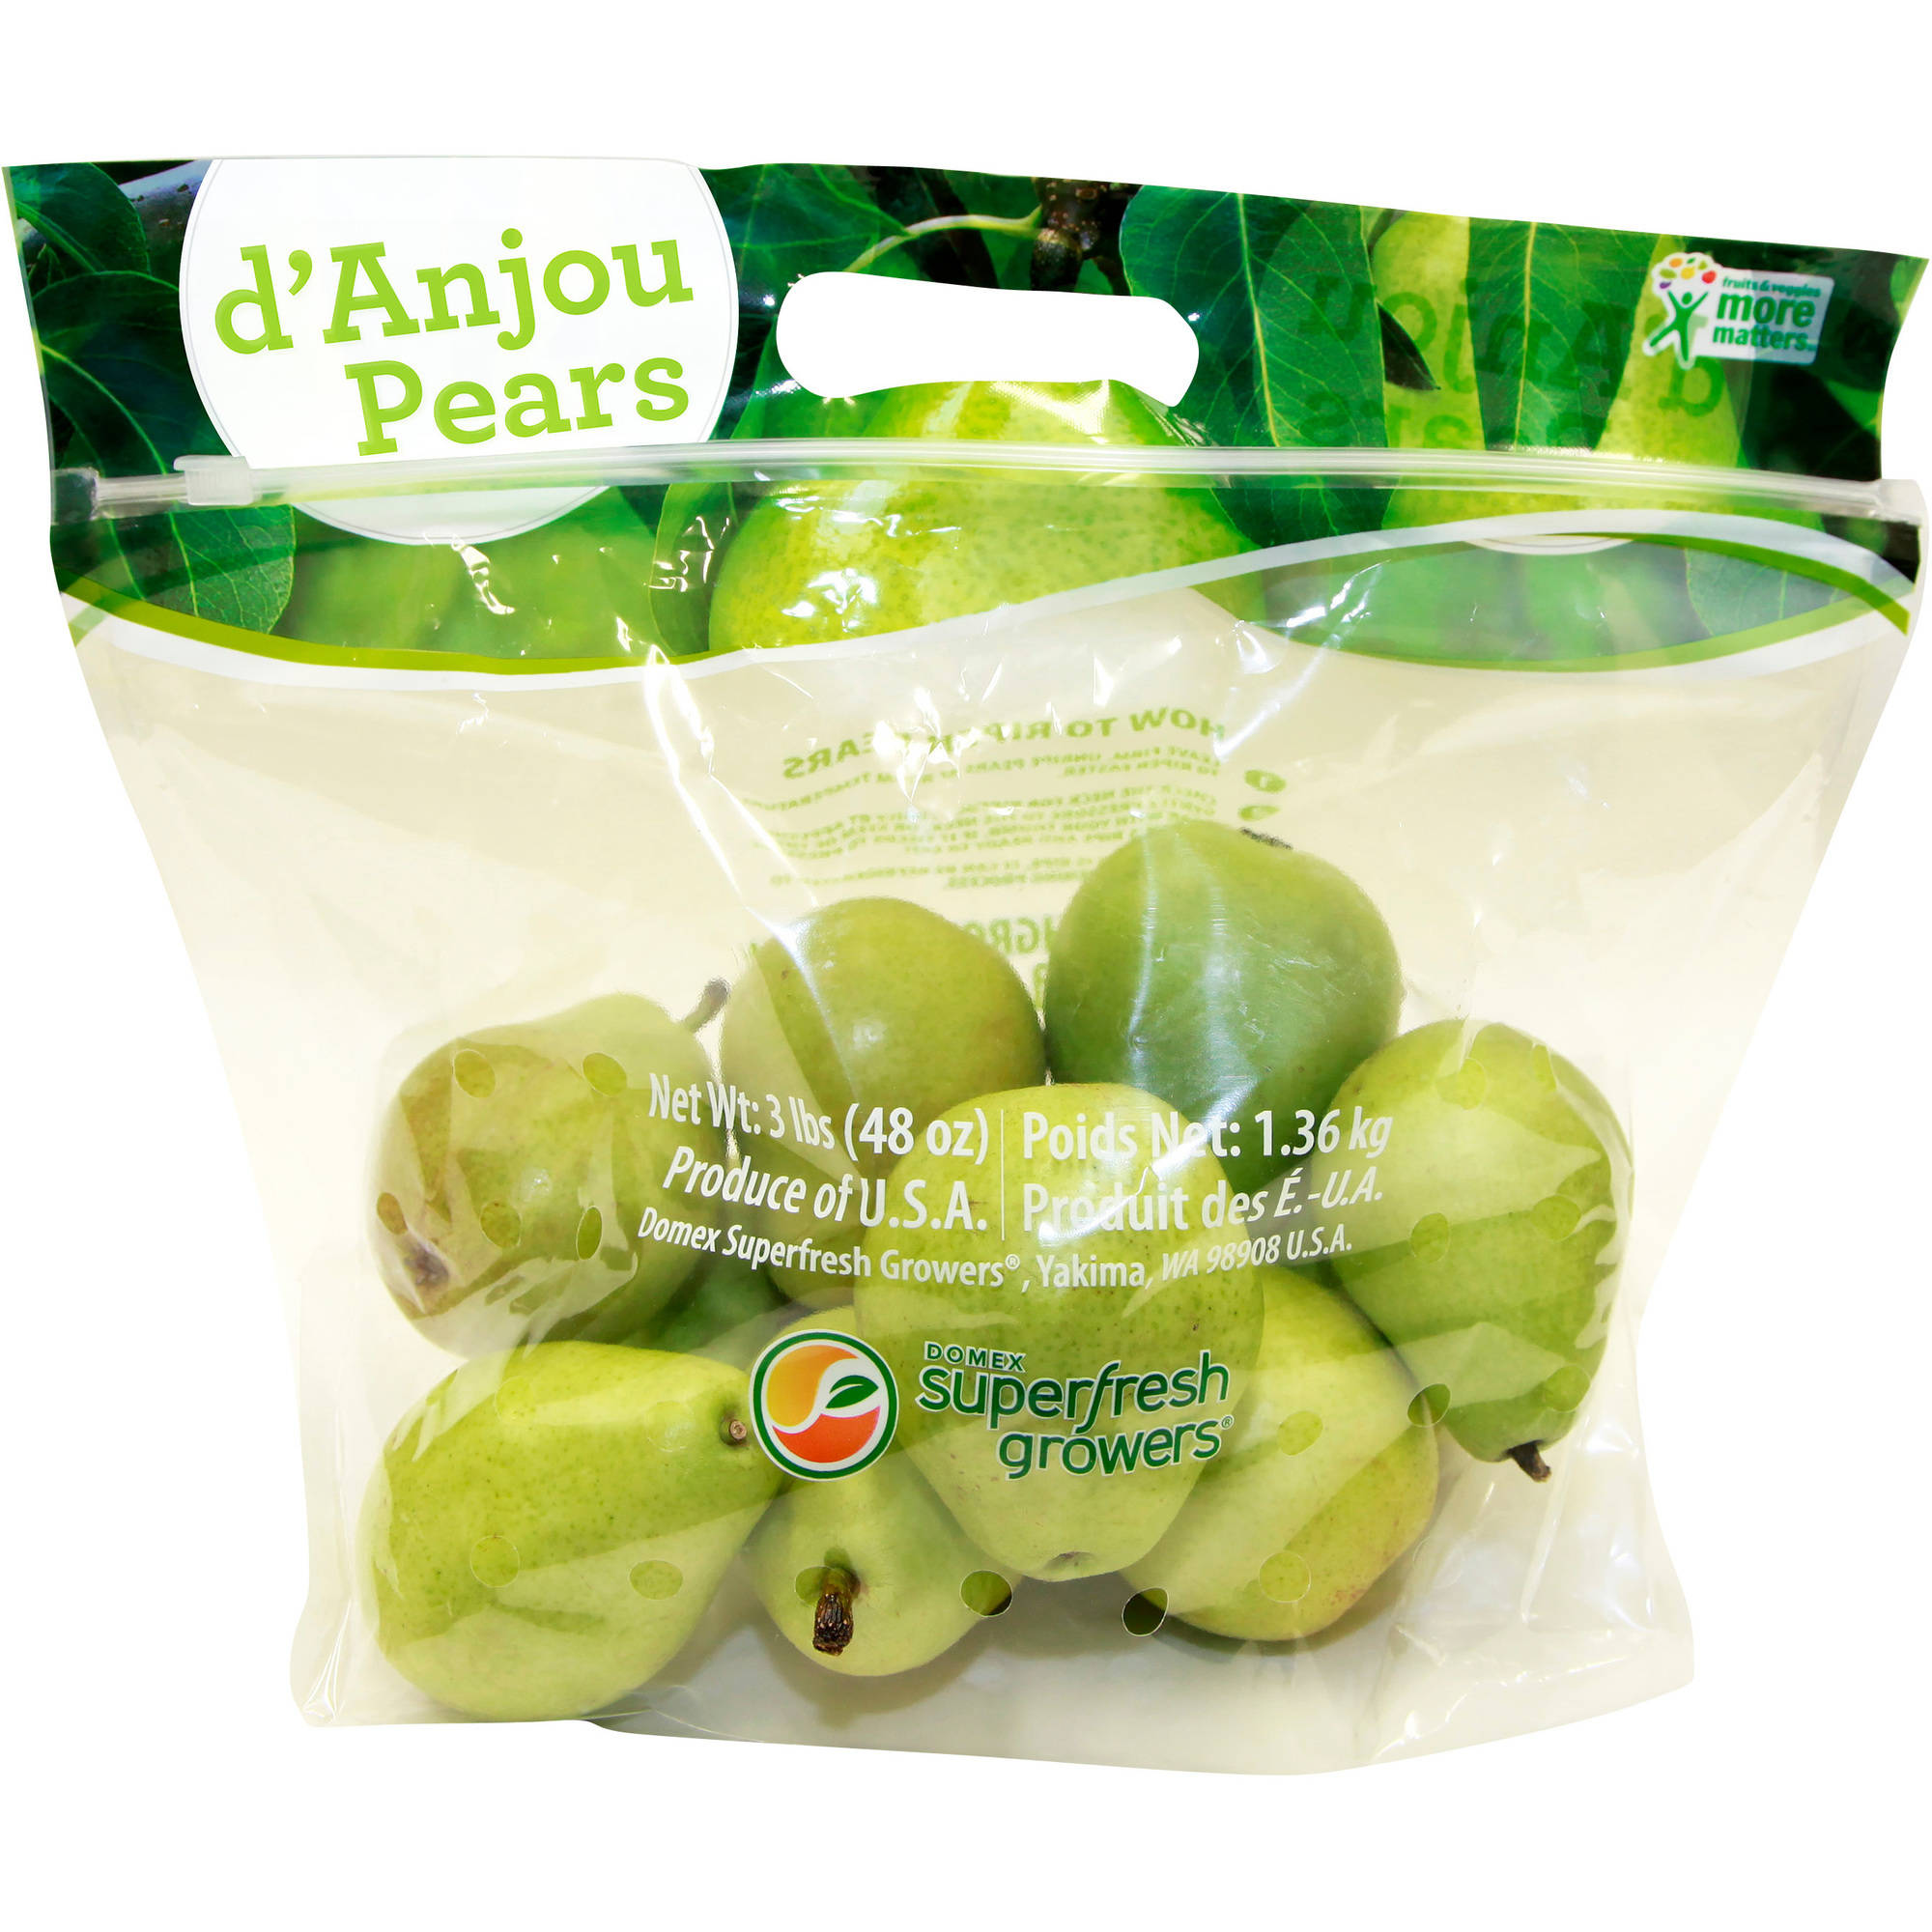 Domex Superfresh Growers Organic d'Anjou Pears, 48 oz